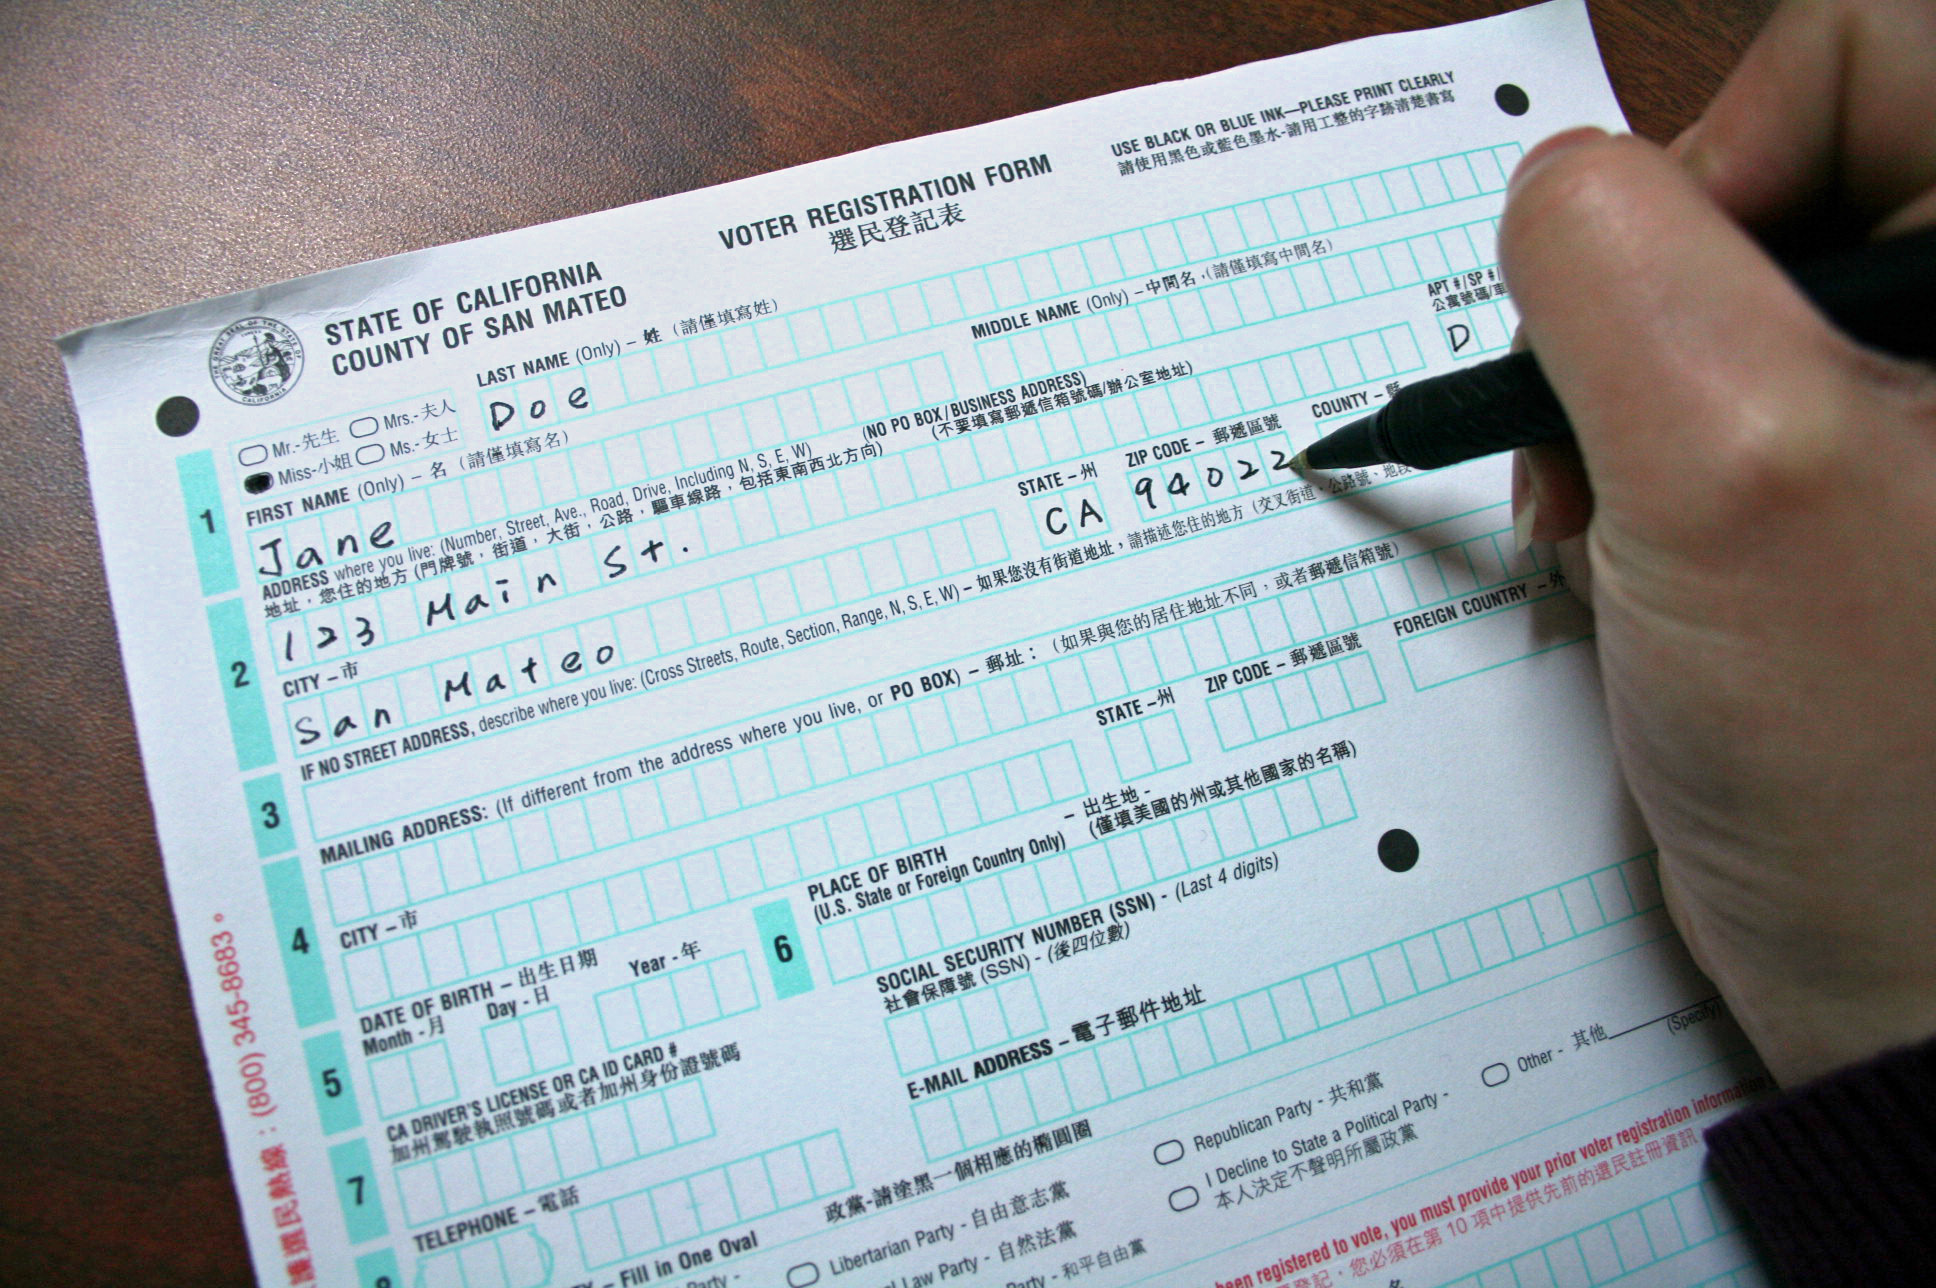 DMV voter registration It should be automatic For The Curious – Voter Registration Form